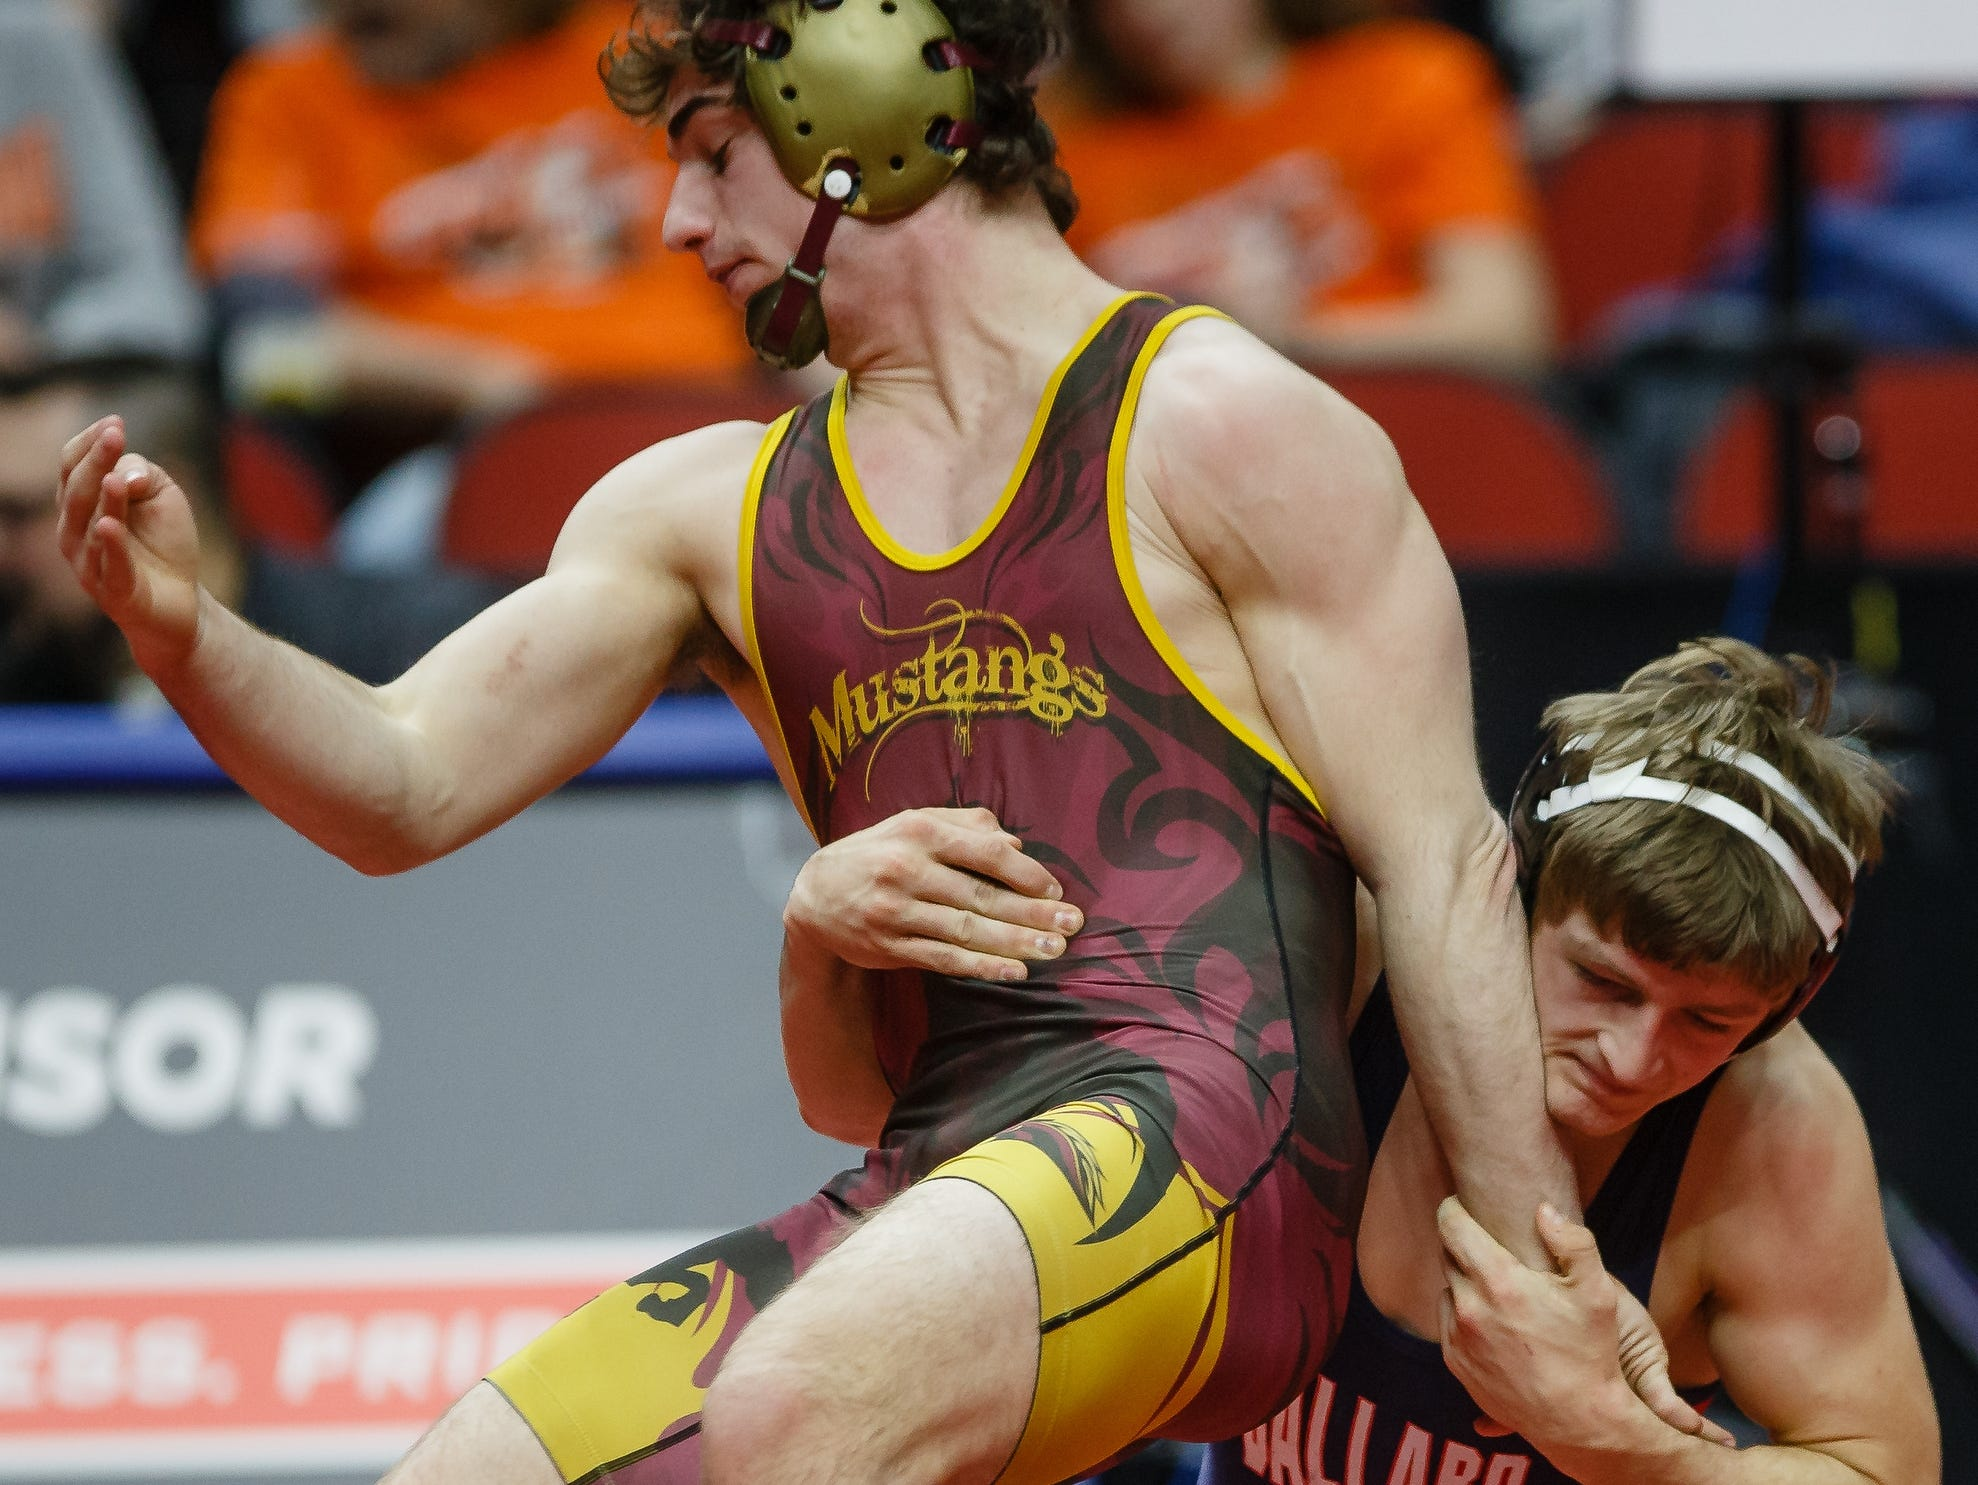 Wes Cummings of PCM wrestles Skyler Noftsger of Ballard during their class 2A 160 pound state championship semi-final match on Friday, Feb. 15, 2019 in Des Moines. Skyler Noftsger moves on with a 10-7 decision.